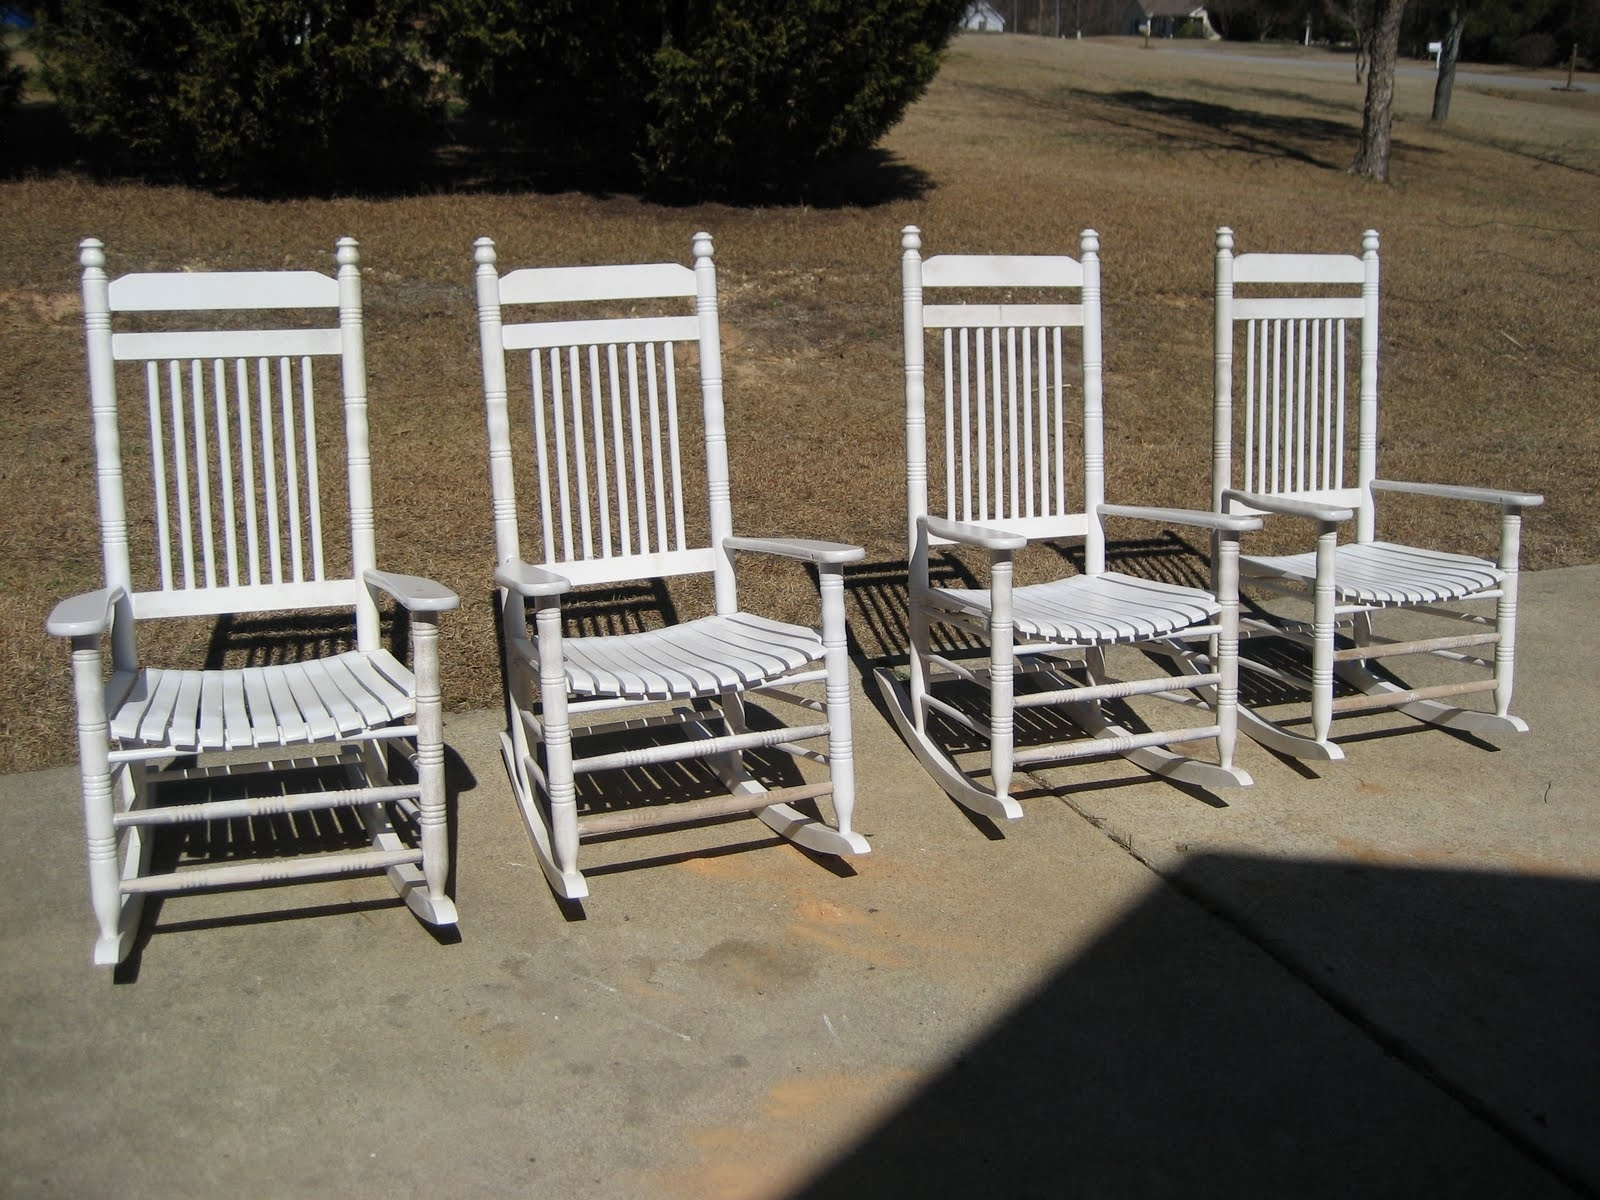 Widely Used Rocking Chairs At Cracker Barrel With Garden & Patio Furniture : Cracker Barrel Rocking Chair Barrel (View 5 of 15)